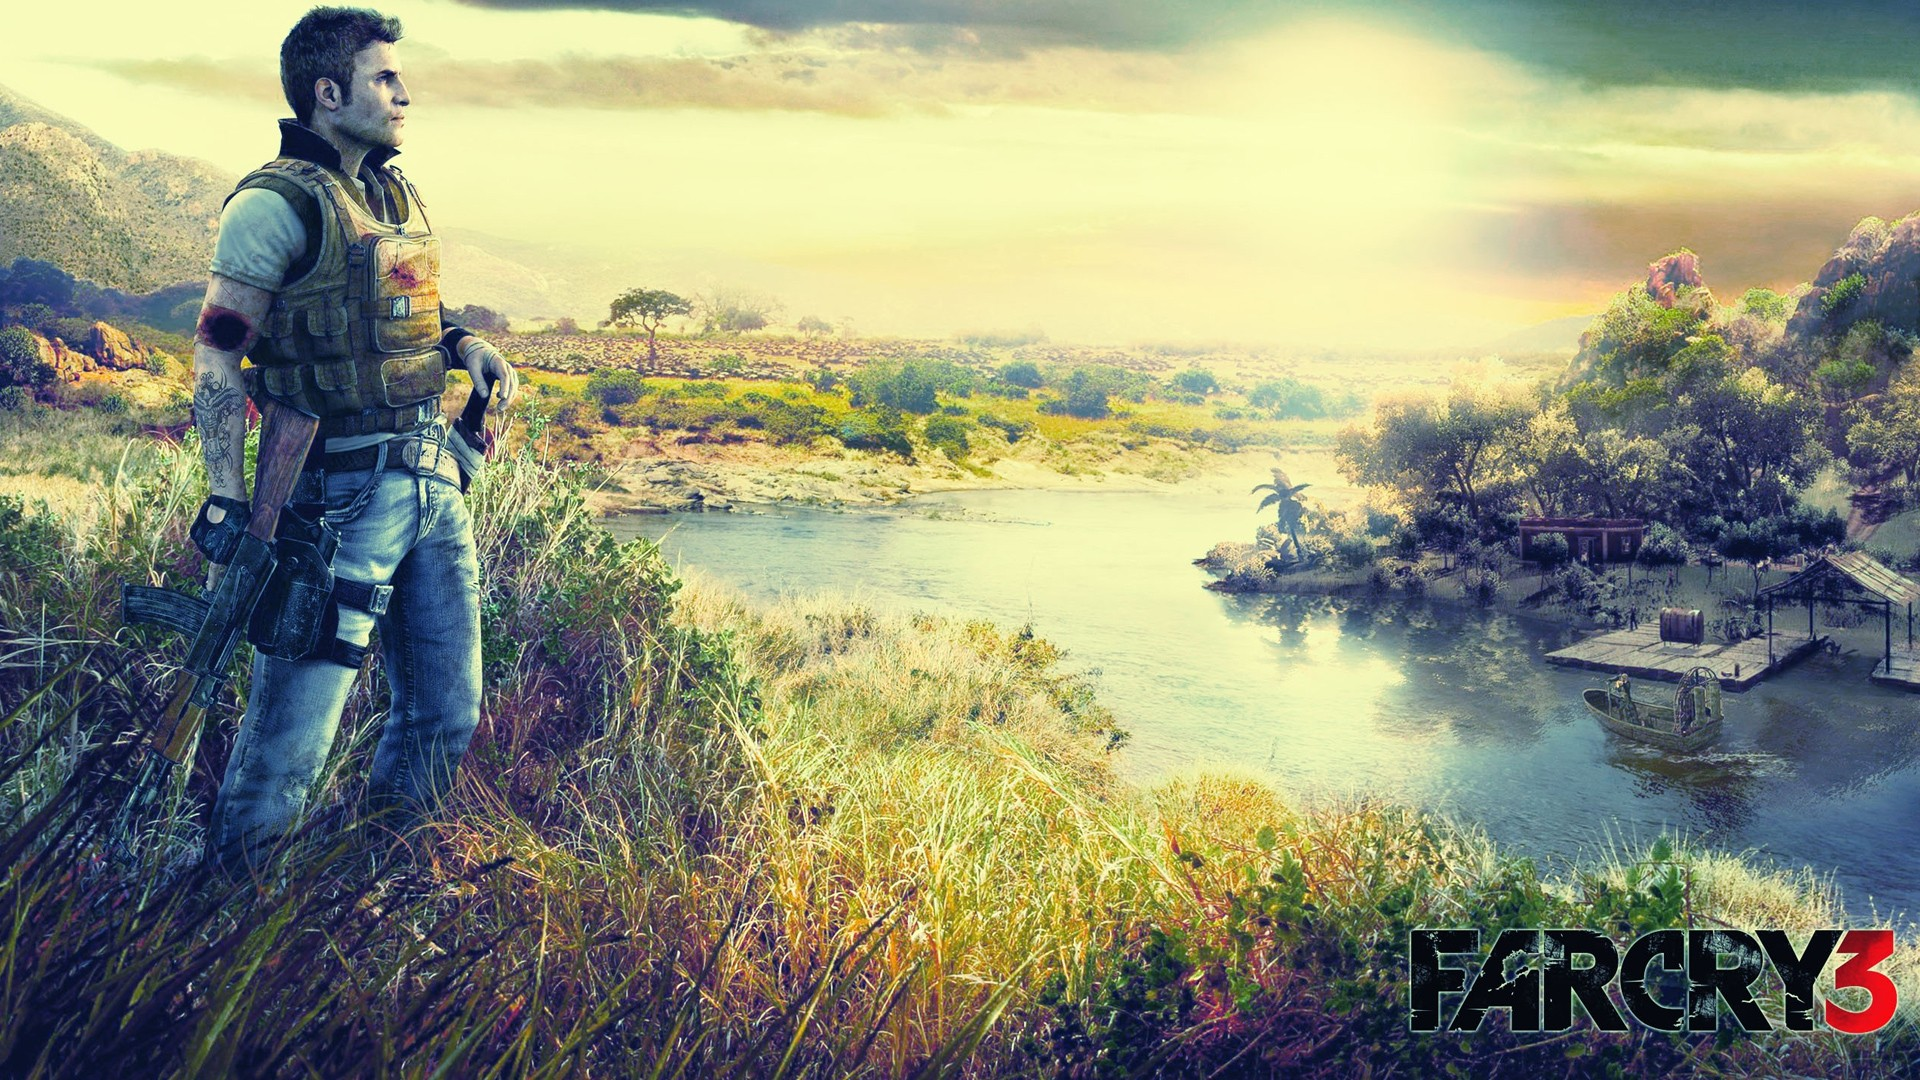 Love Wallpaper Hd 3d 2012 Far Cry 3 Wallpapers Hd Wallpapers Id 10577